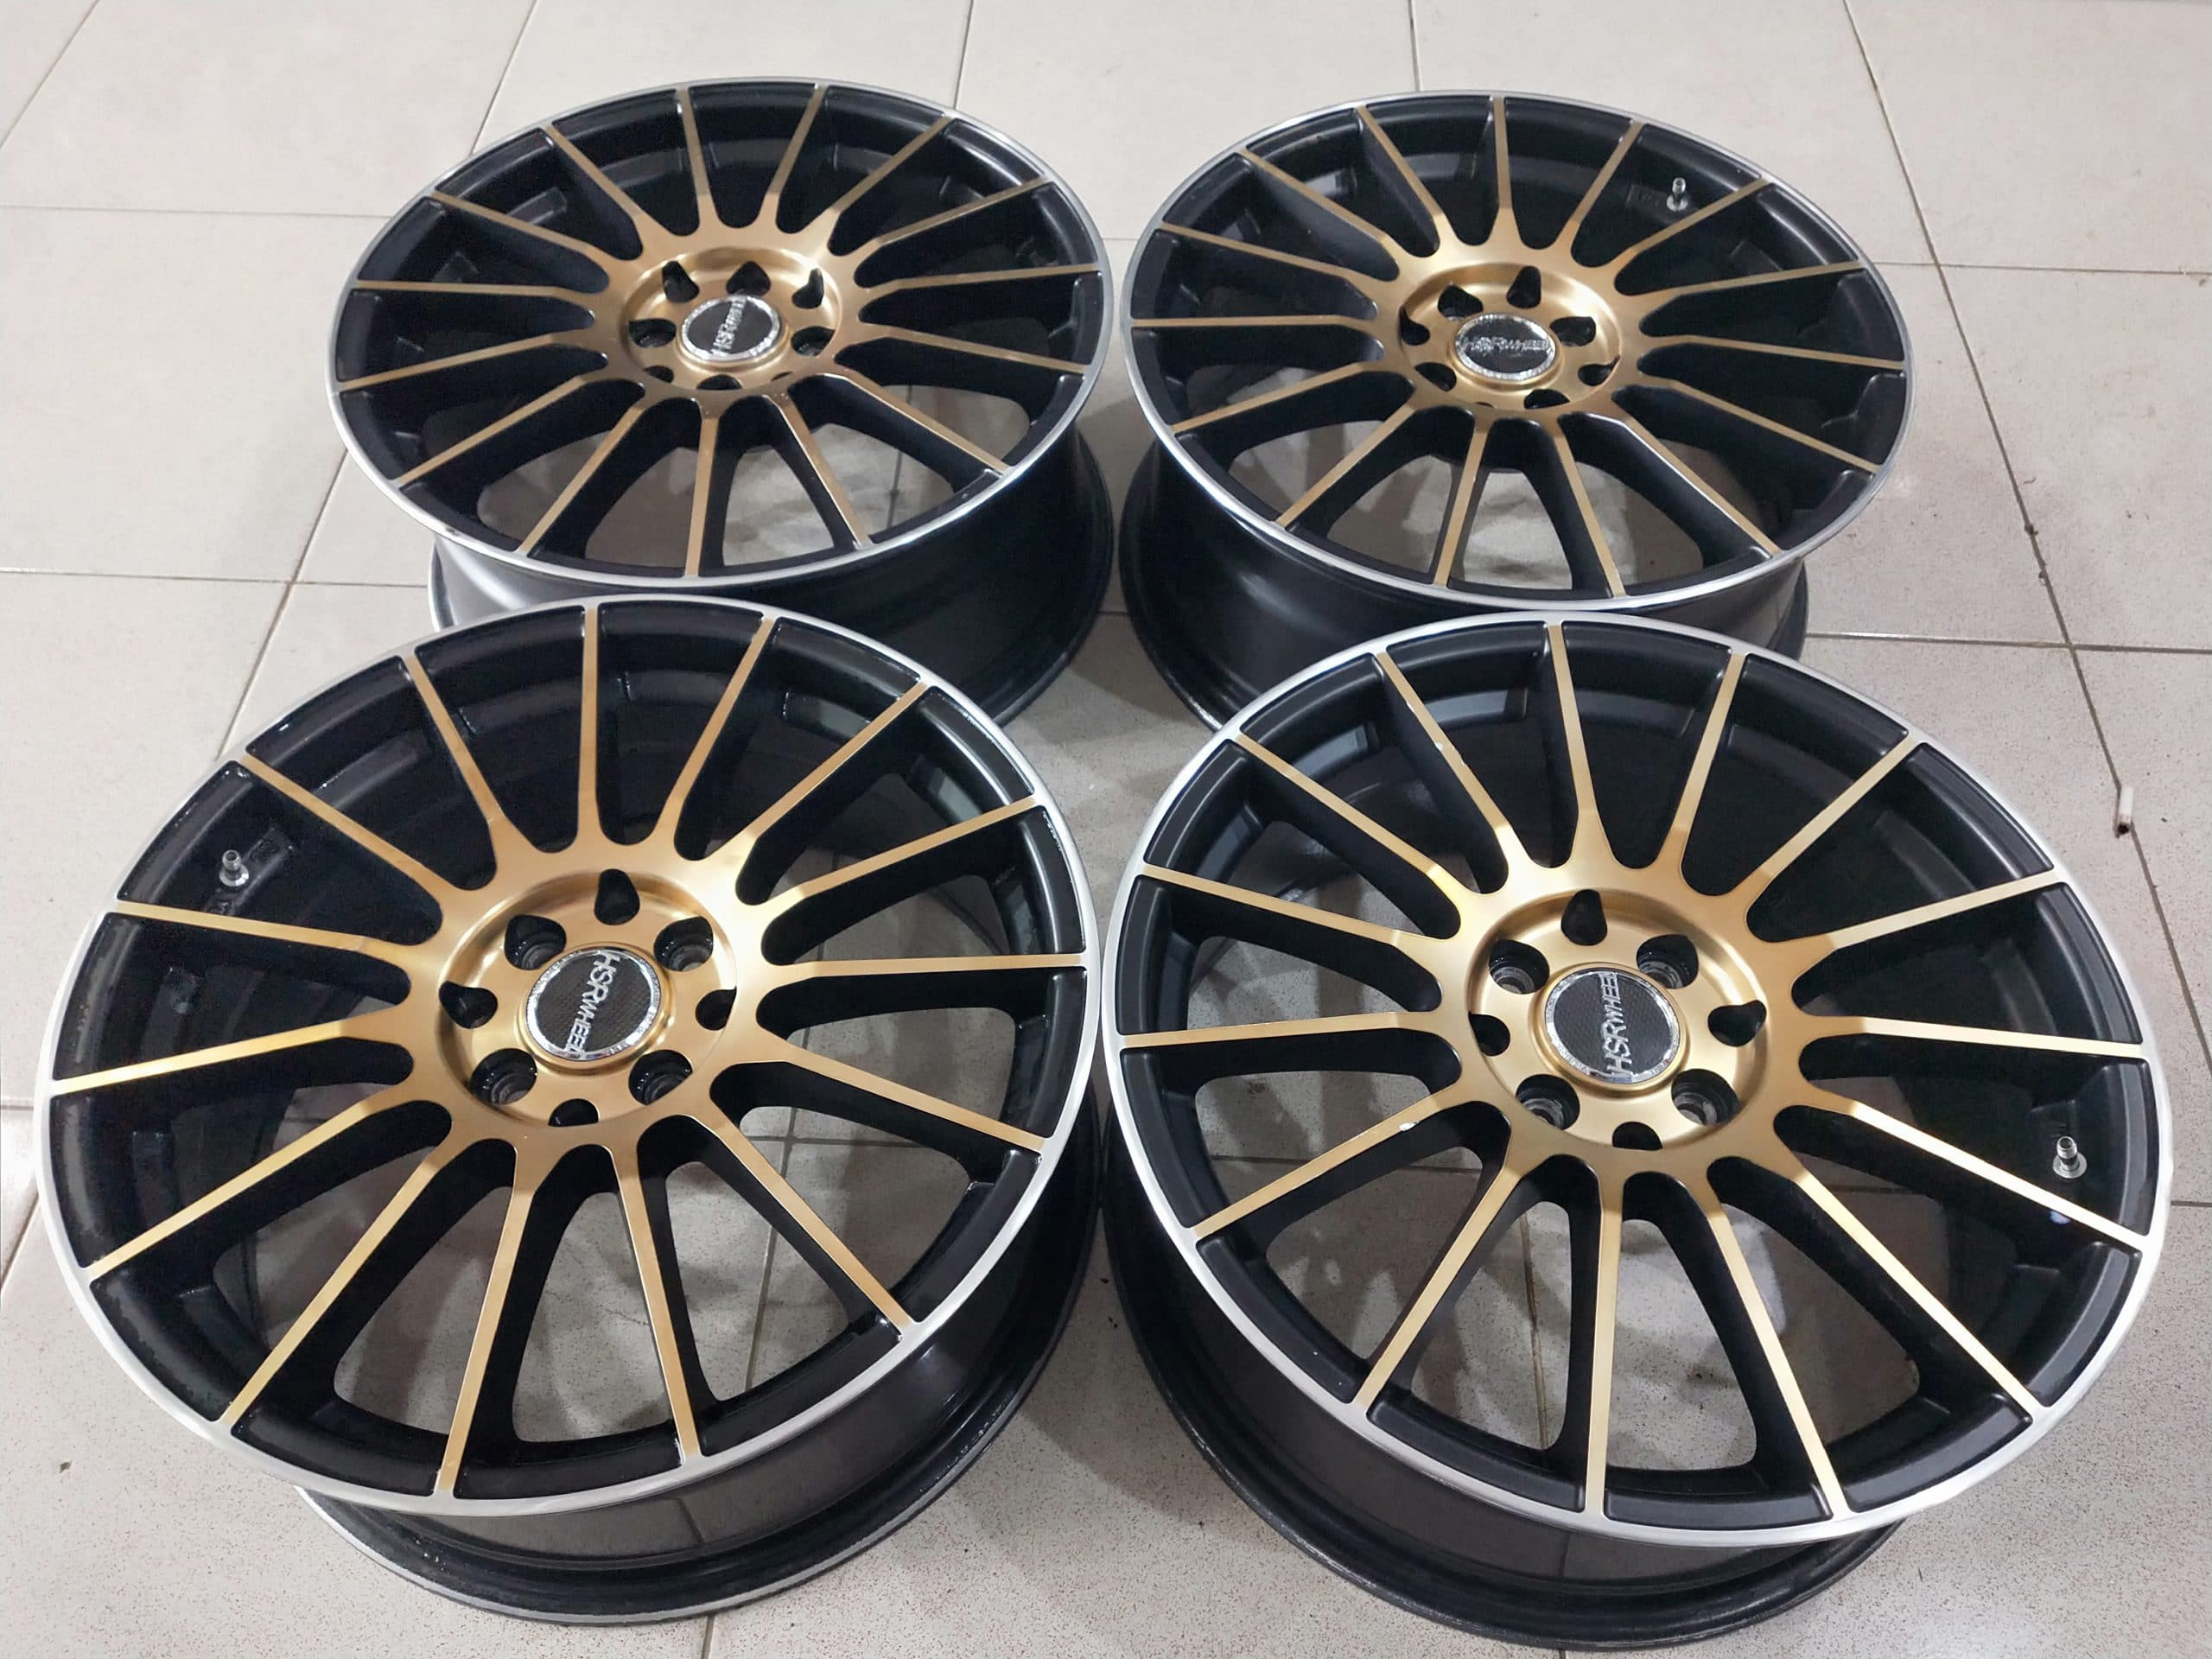 Velg racing race ring17x7,5 pcd8x100-114,3 et40